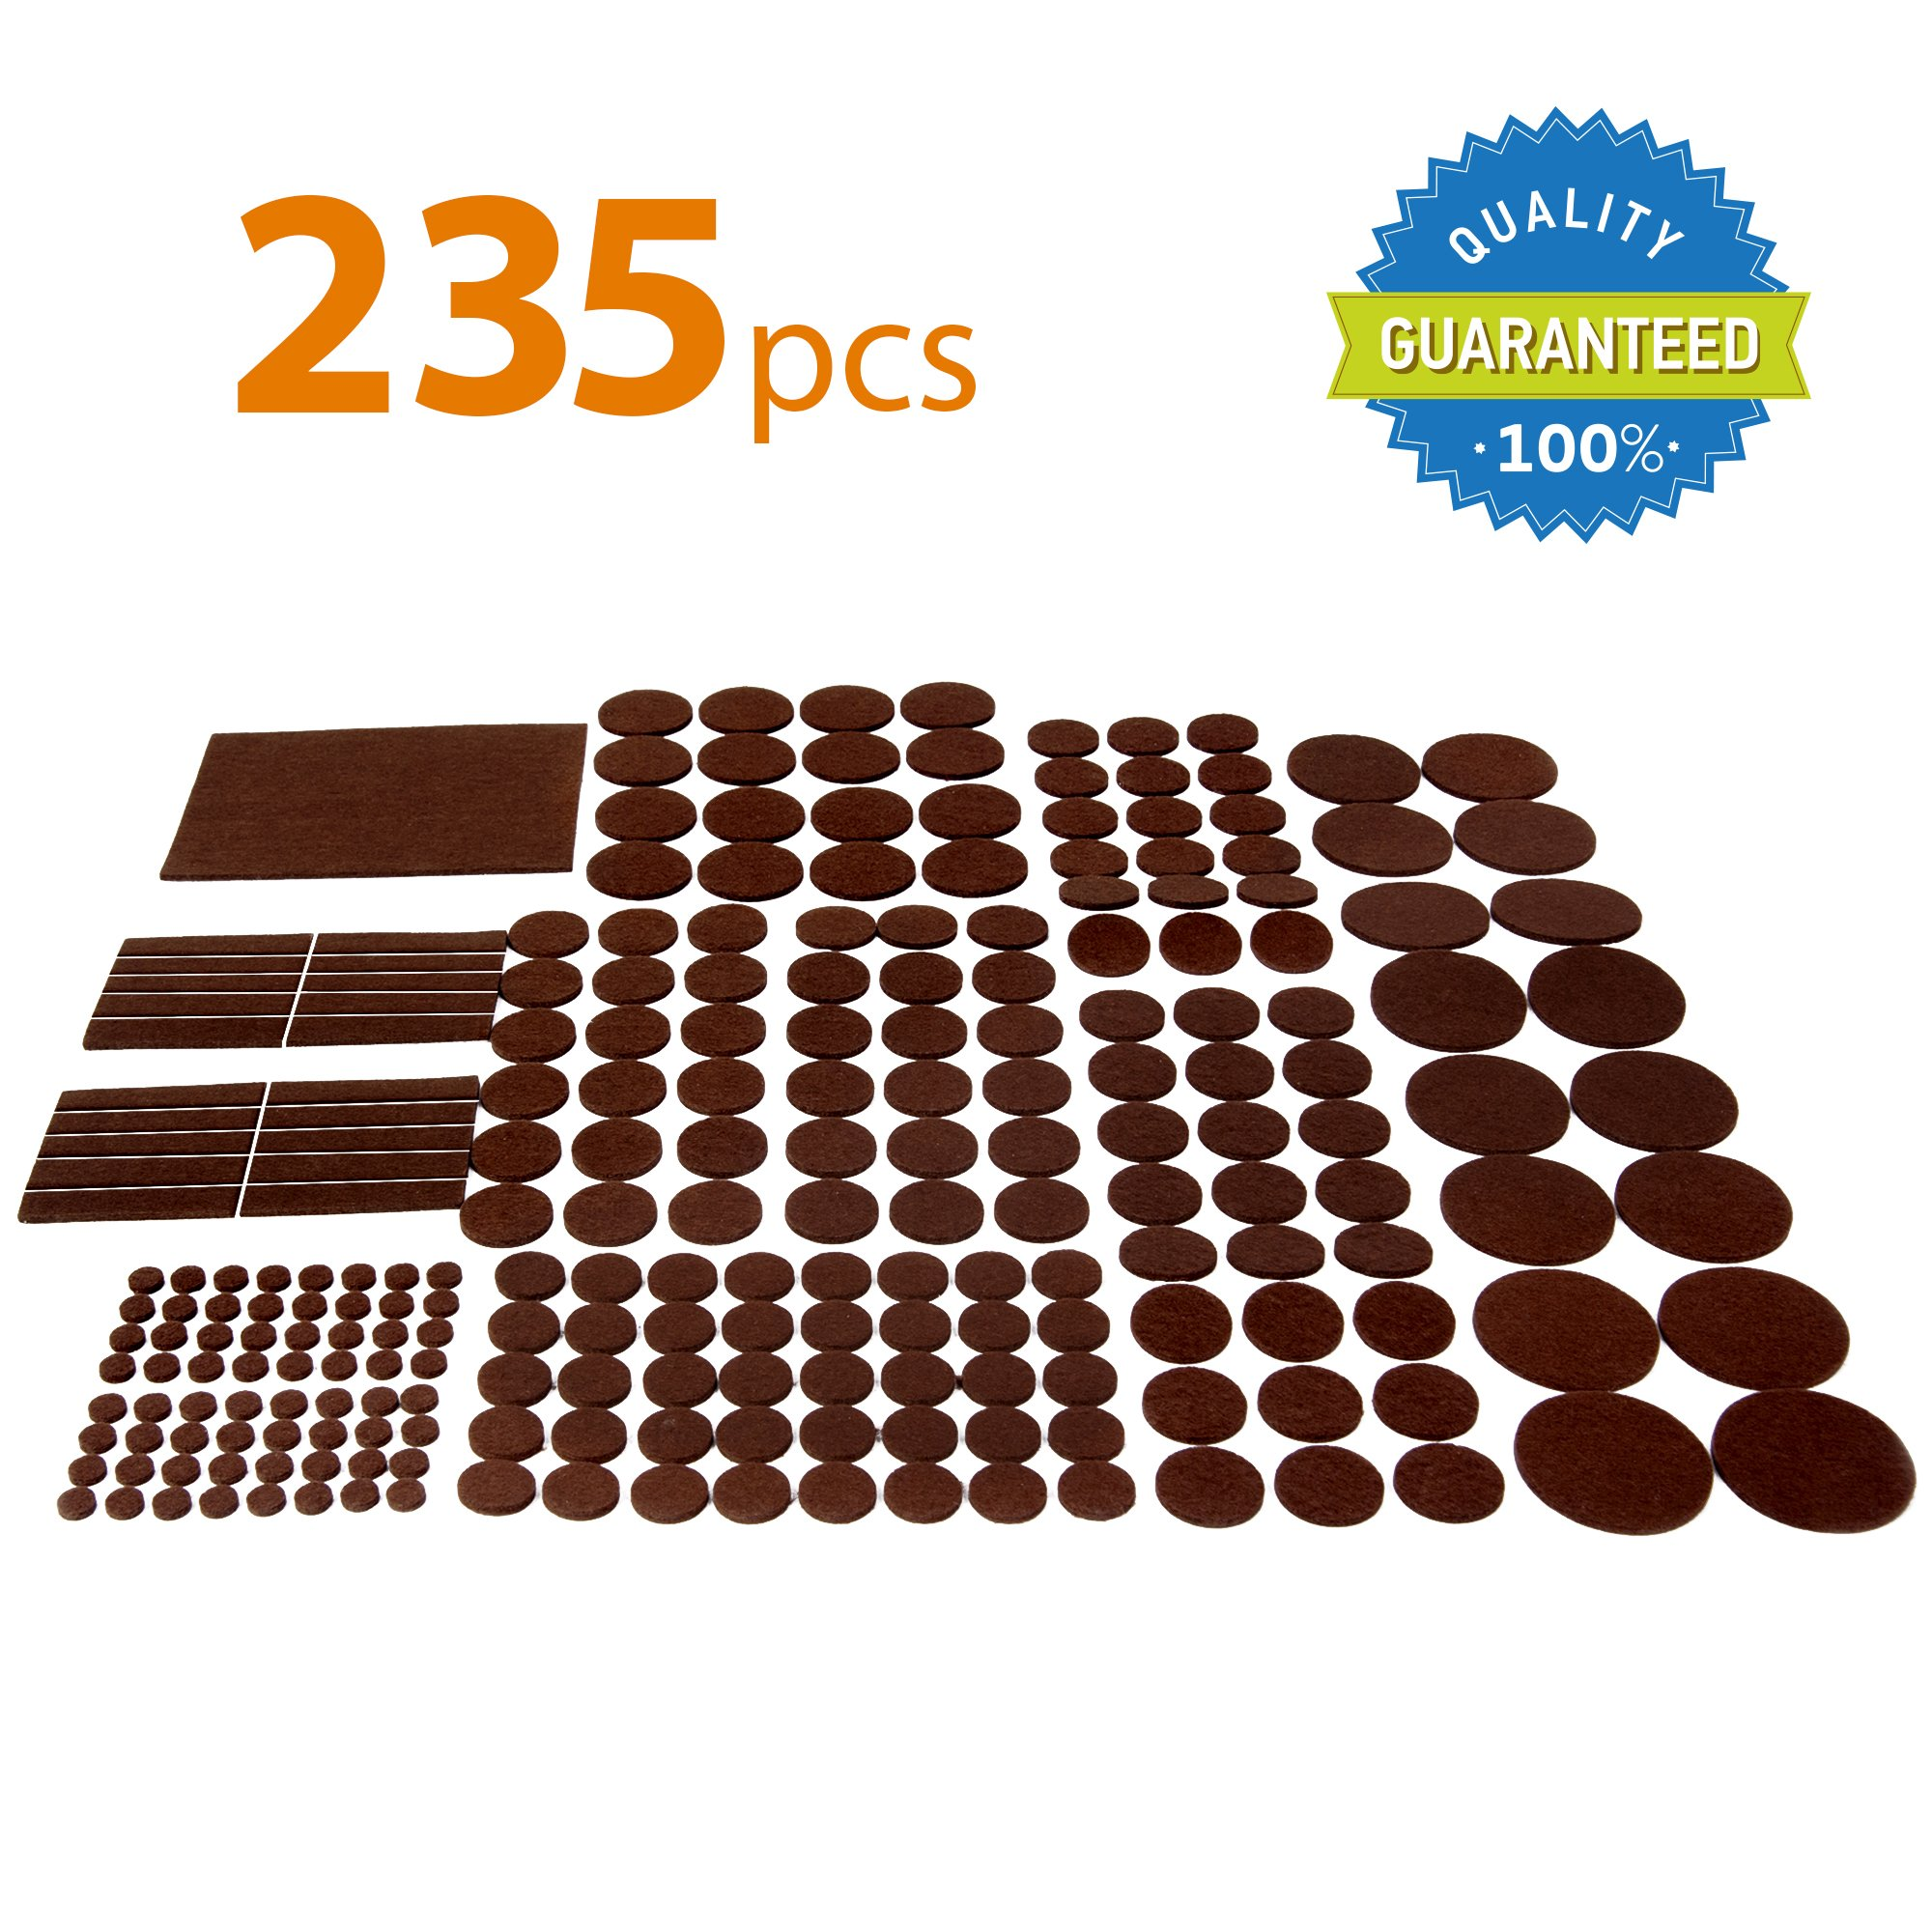 Best Chair Pads For Hardwood Floors X Protector Premium Giant Pack Furniture Pads 235 Piece